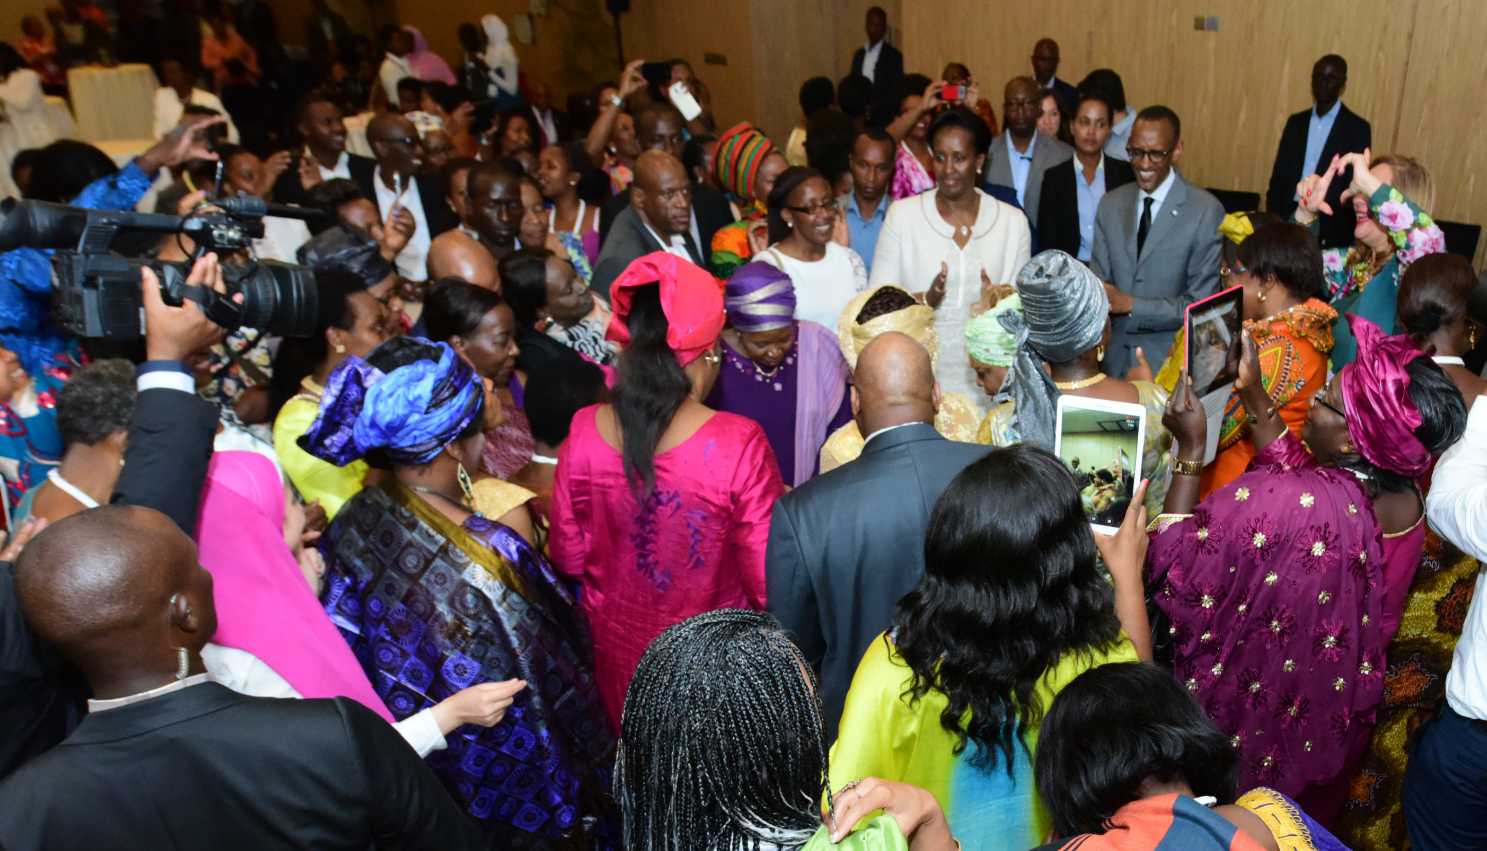 The event was attended by dozens of guests at Marriott Hotel, Kigali